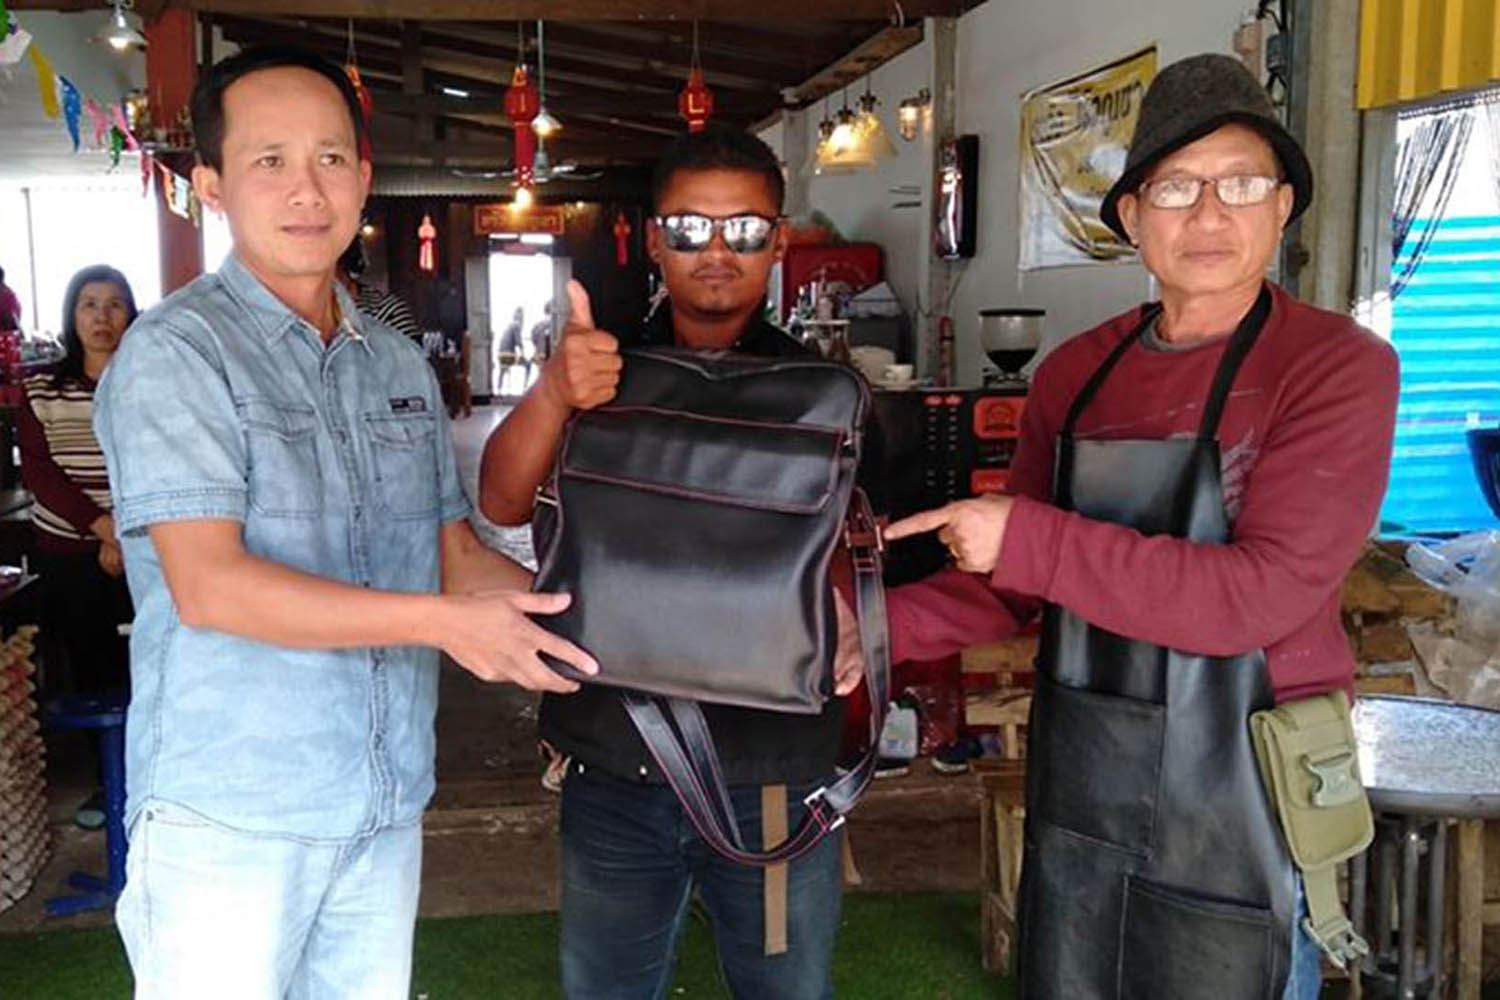 Tourist Pariwat Thangtham (left) retrieves a bag containing 700,000 baht in cash from Mountain Tiger Restaurant owner Chakkrapong Plaichaiyaphum (right), with the administrator of a Facebook page that connected the two as a witness, on Phu Thap Boek in Phetchabun on Sunday. (Photo by Soonthorn Kongwarakhom)